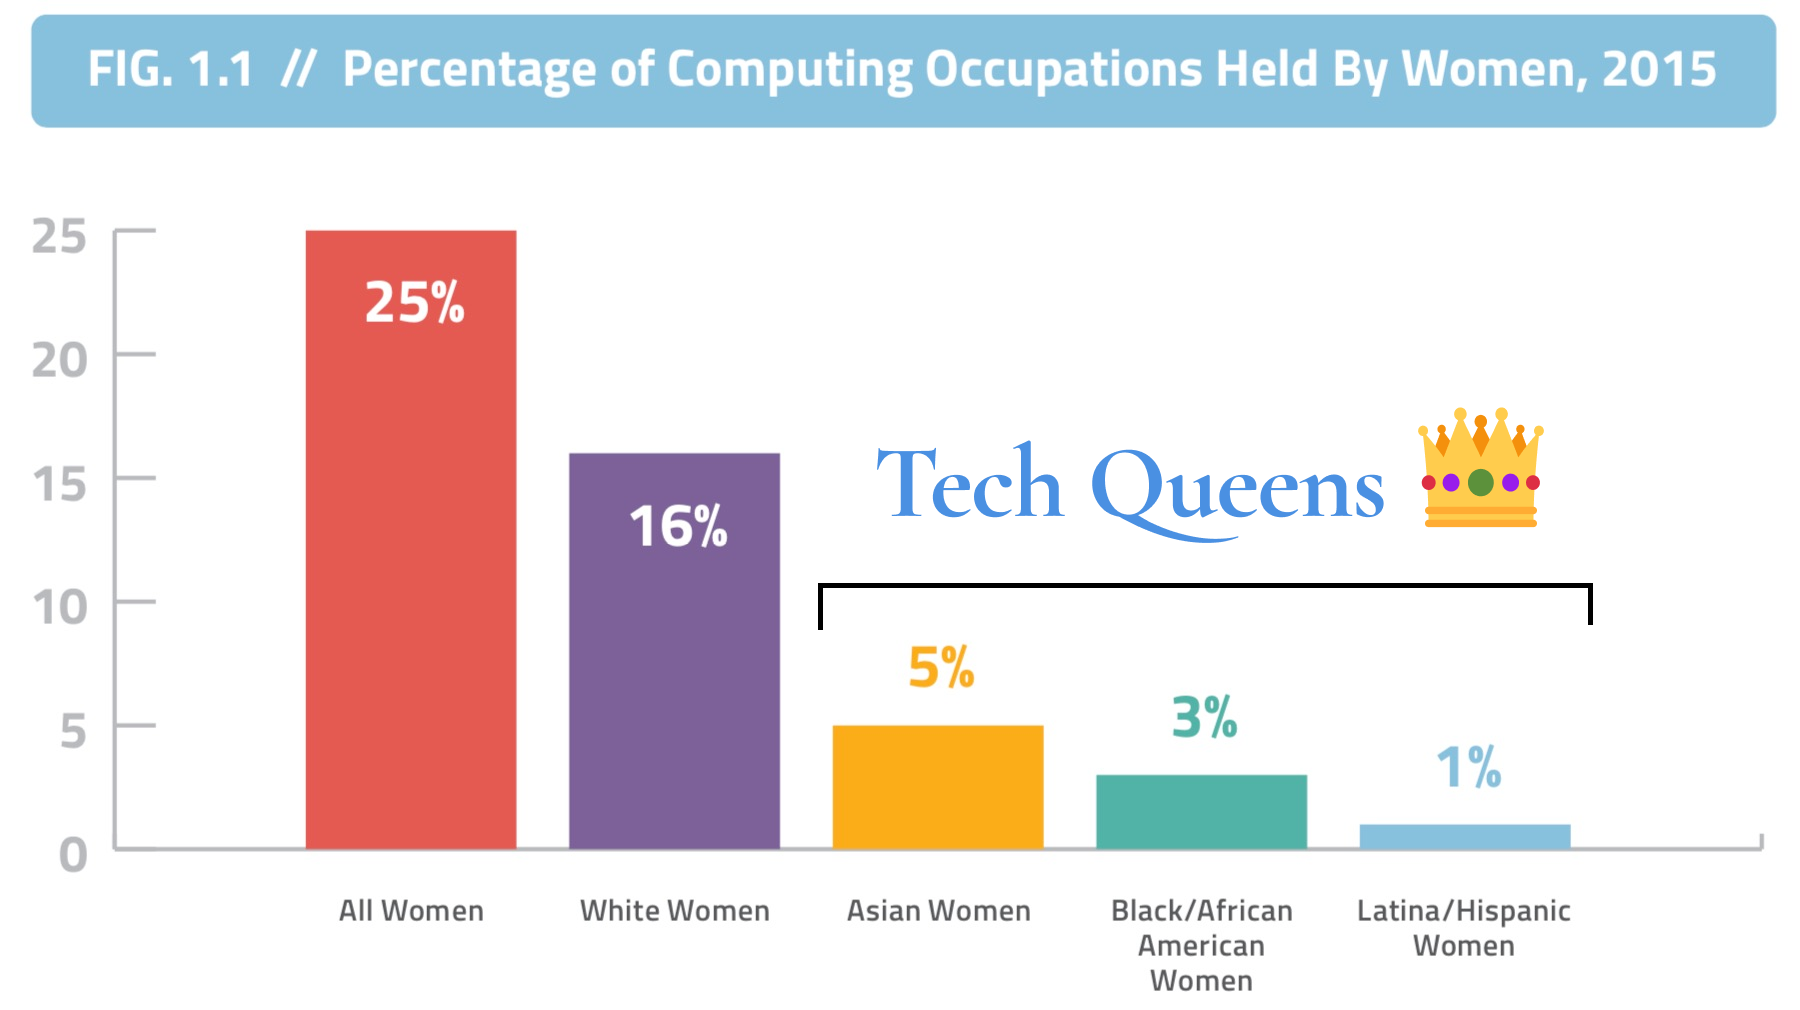 Percentage of Computing Occupations Held By Women